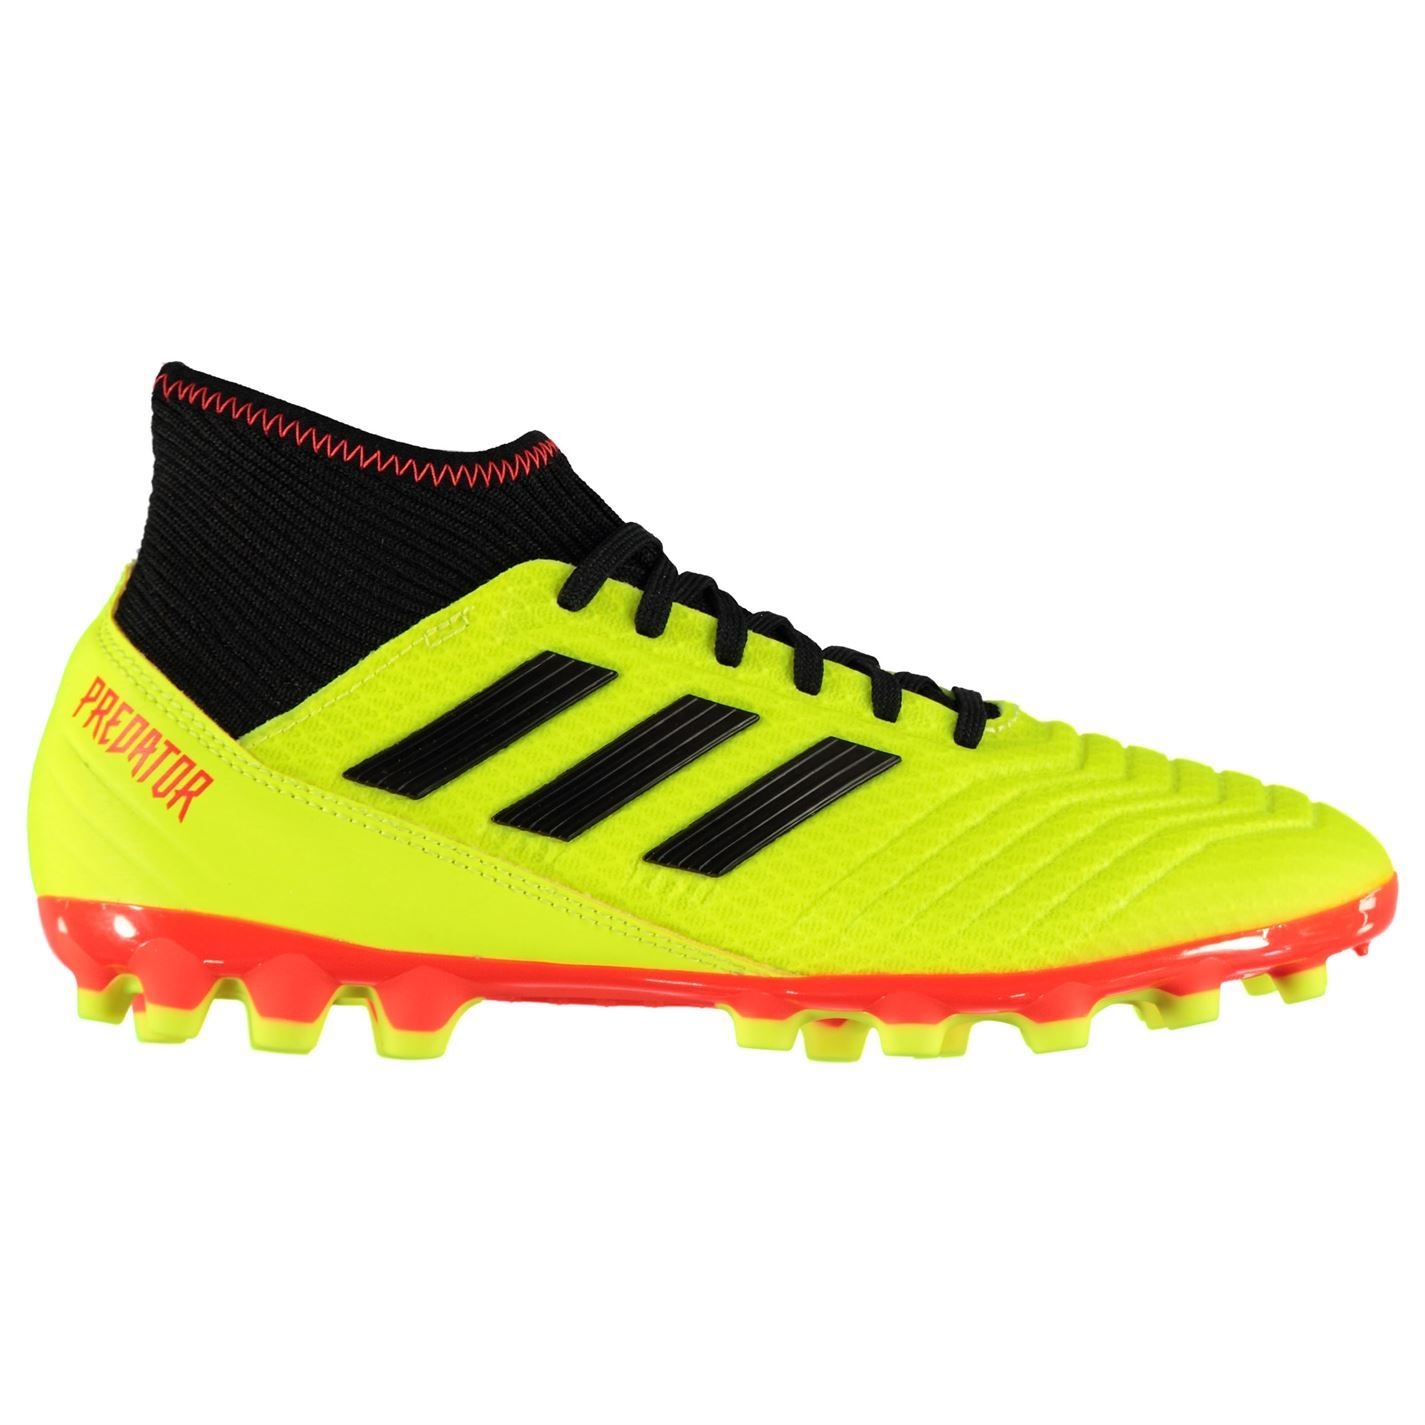 7c98c8fe4f22 adidas Predator 18.3 AG AG Football Boots Mens Yellow Soccer Shoes Cleats